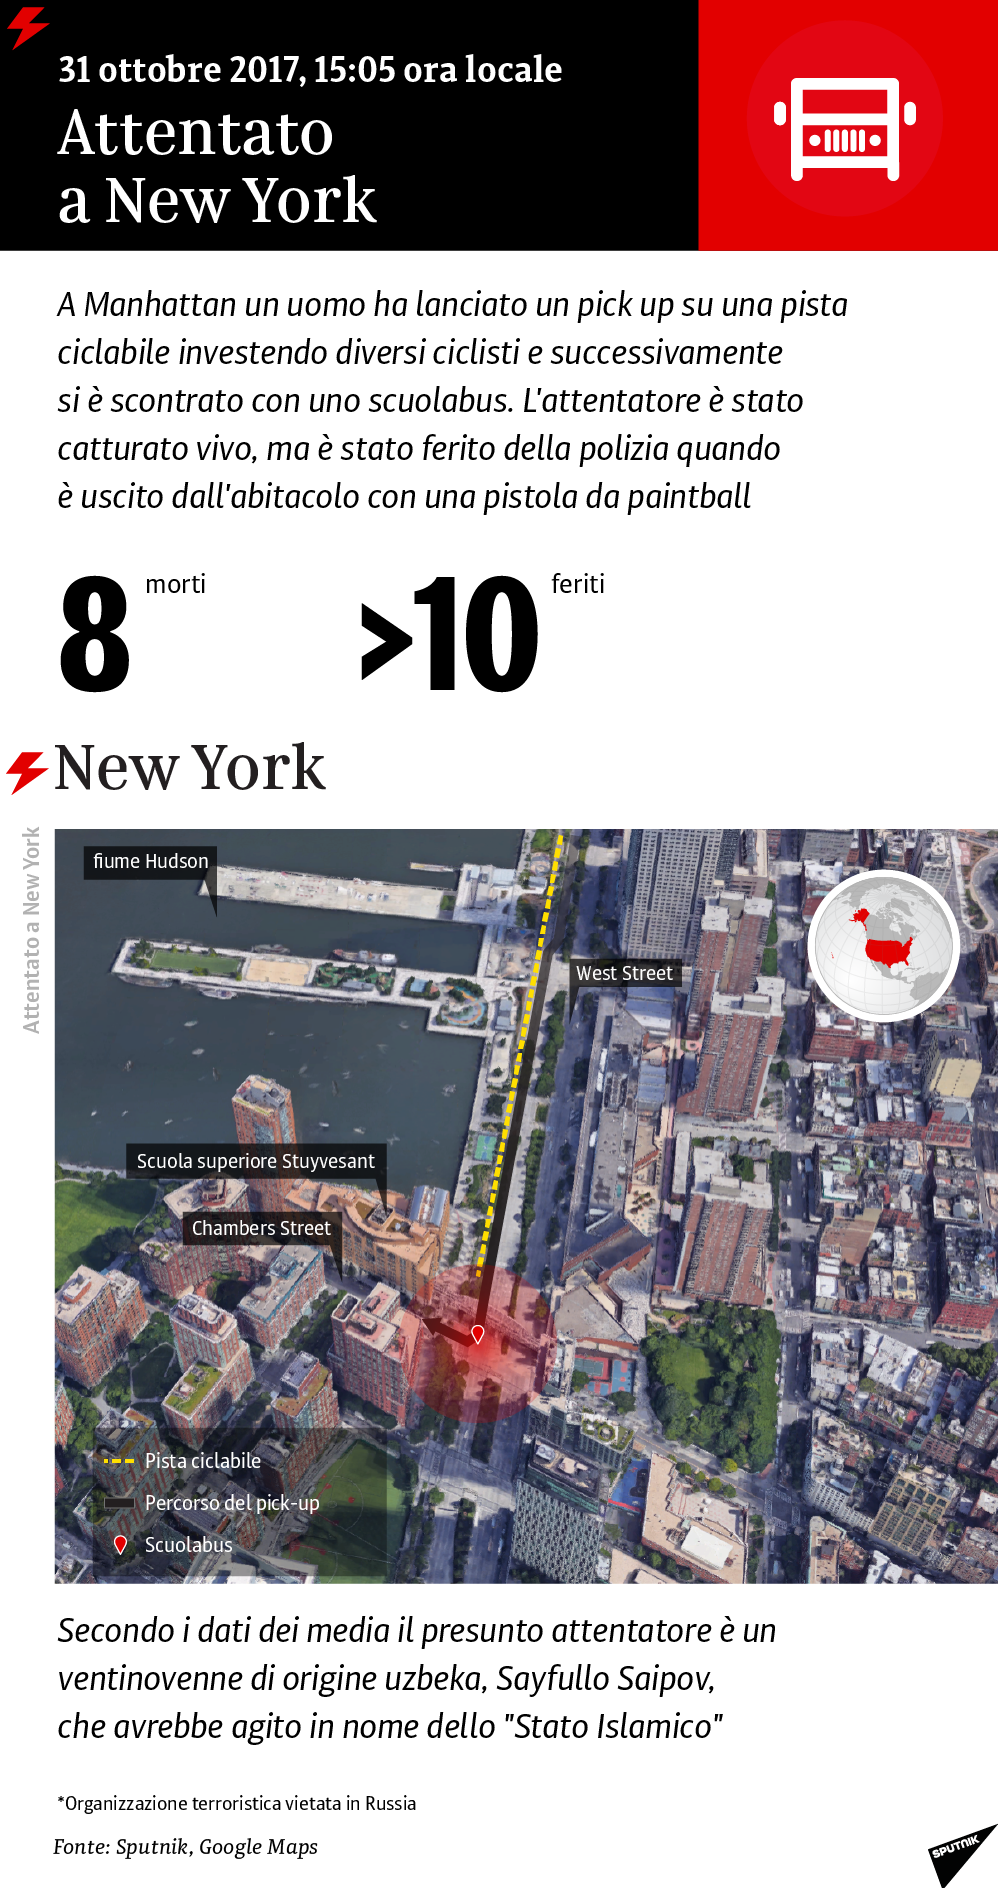 Attentato a New York, 31 ottobre 2017